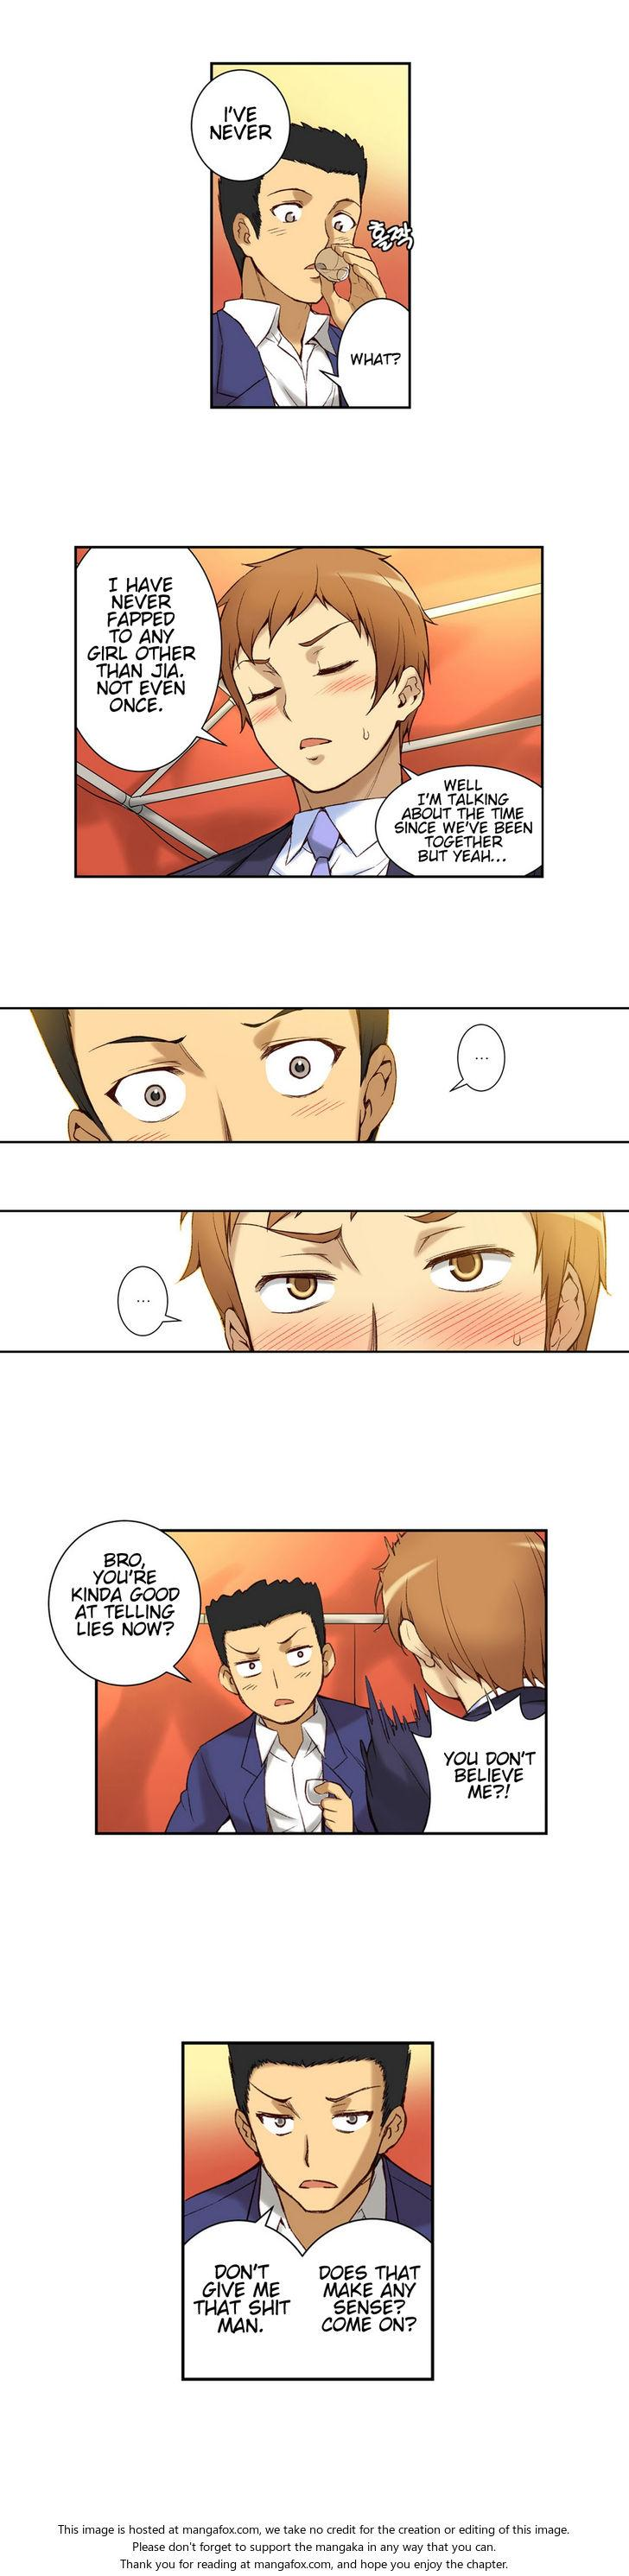 [Donggul Gom] She is Young (English) Part 1/2 16